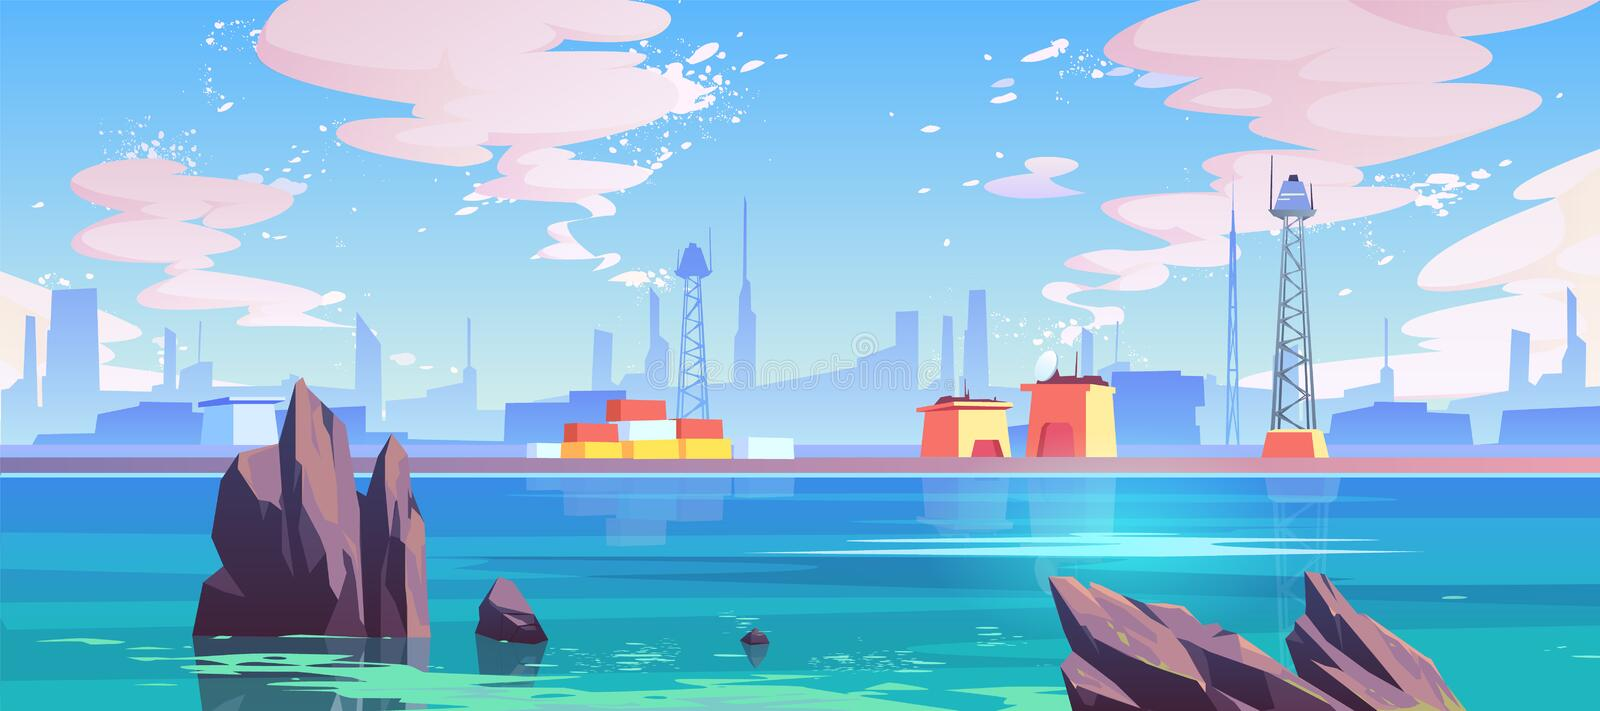 Sea port industrial shipyard with cargo containers. Sea port, industrial shipyard with cargo logistic containers for goods and telecommunication towers at stock illustration